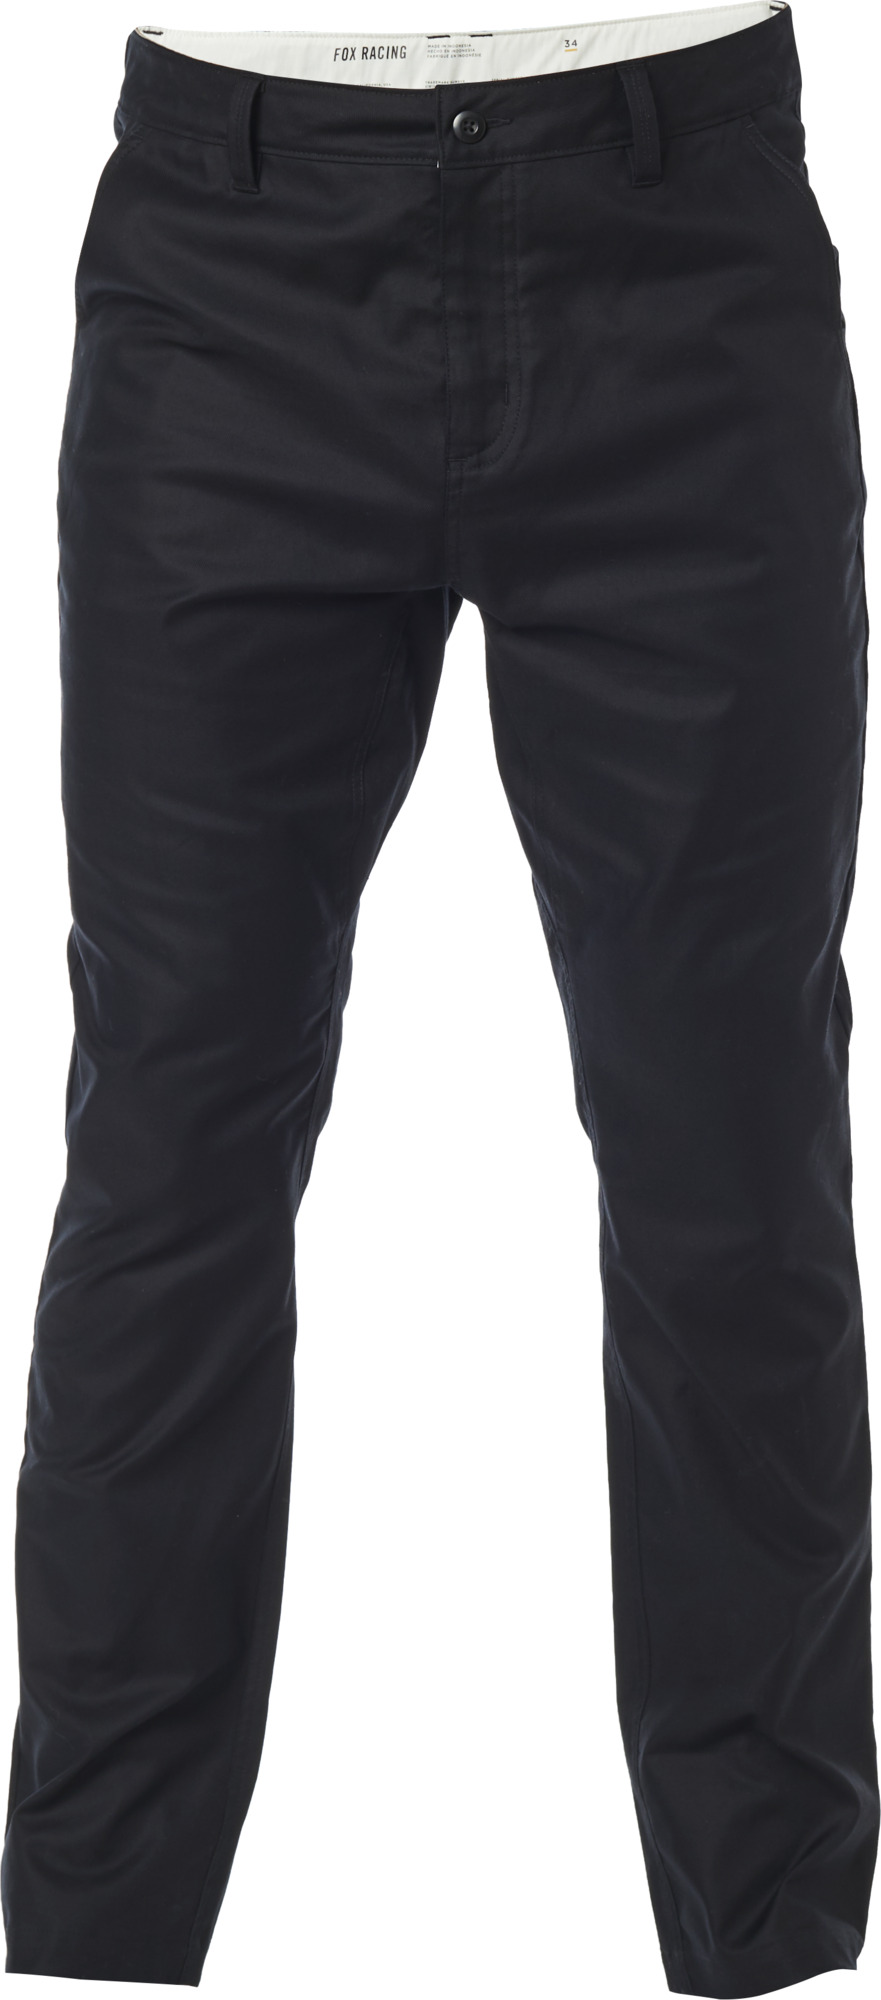 Wiggle Fox Racing Essex Stretch Pant Trousers